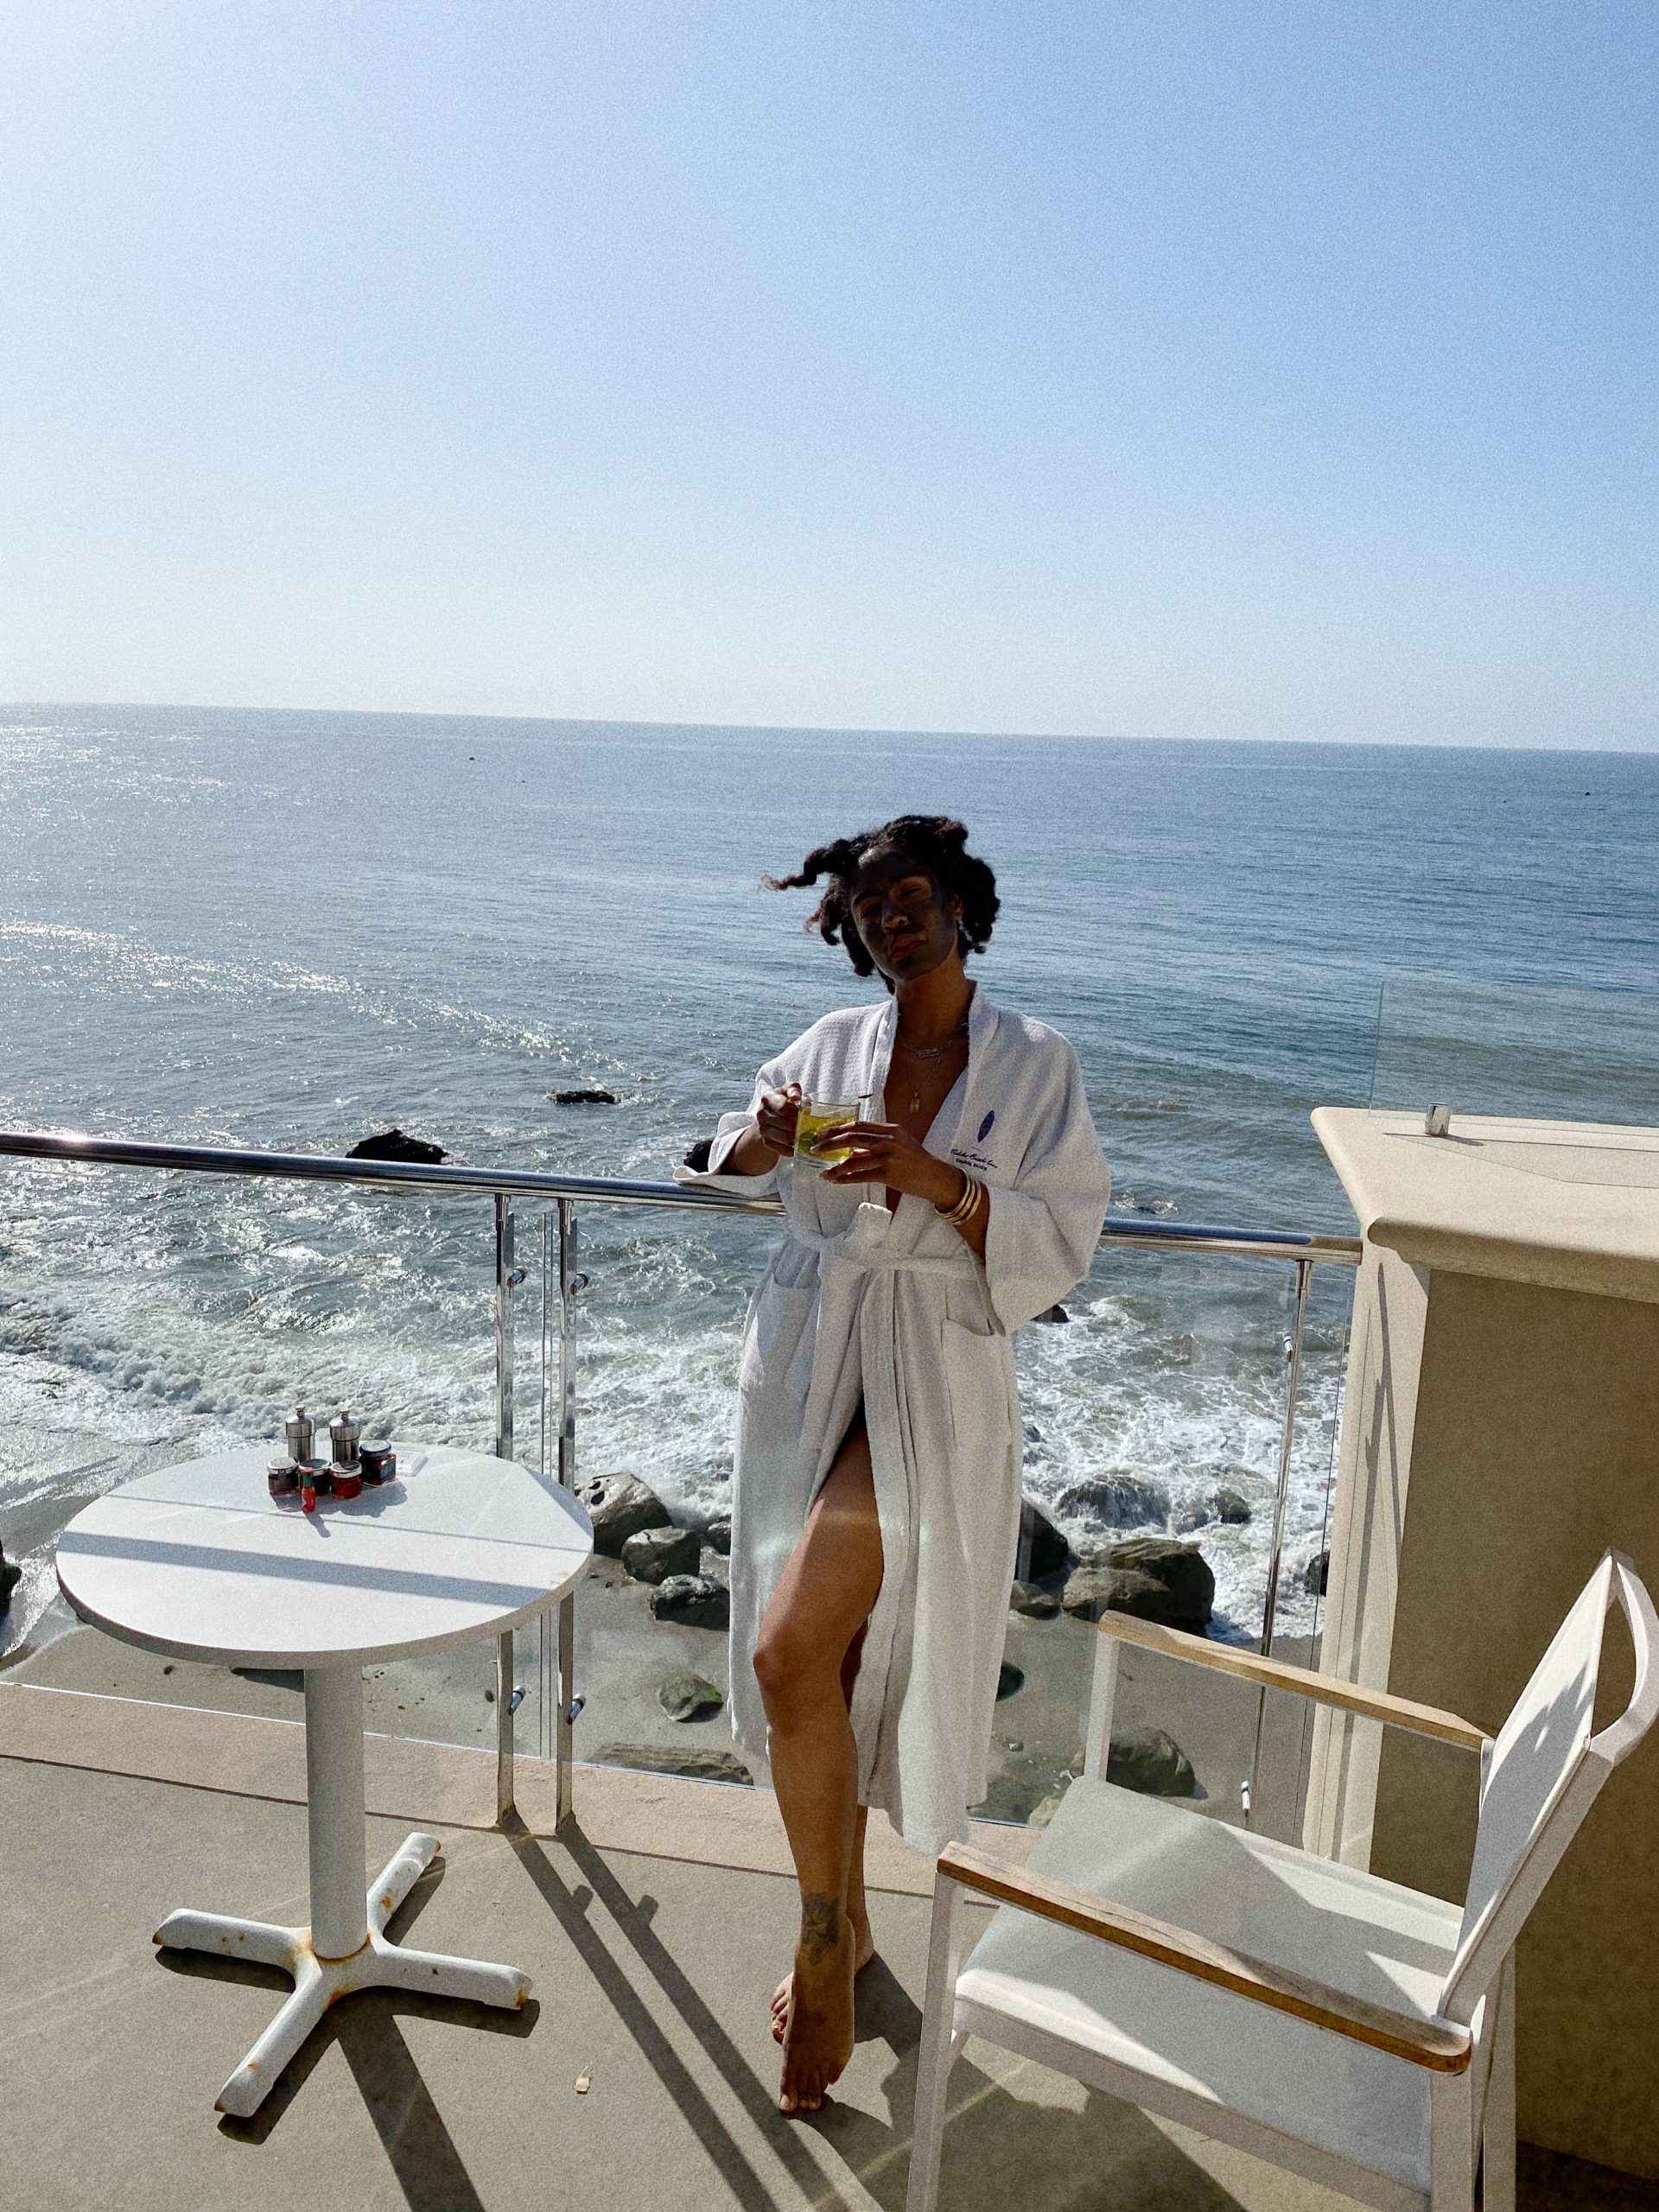 Malibu beach inn where to stay in Malibu, luxury hotel Los Angeles ocean view balcony